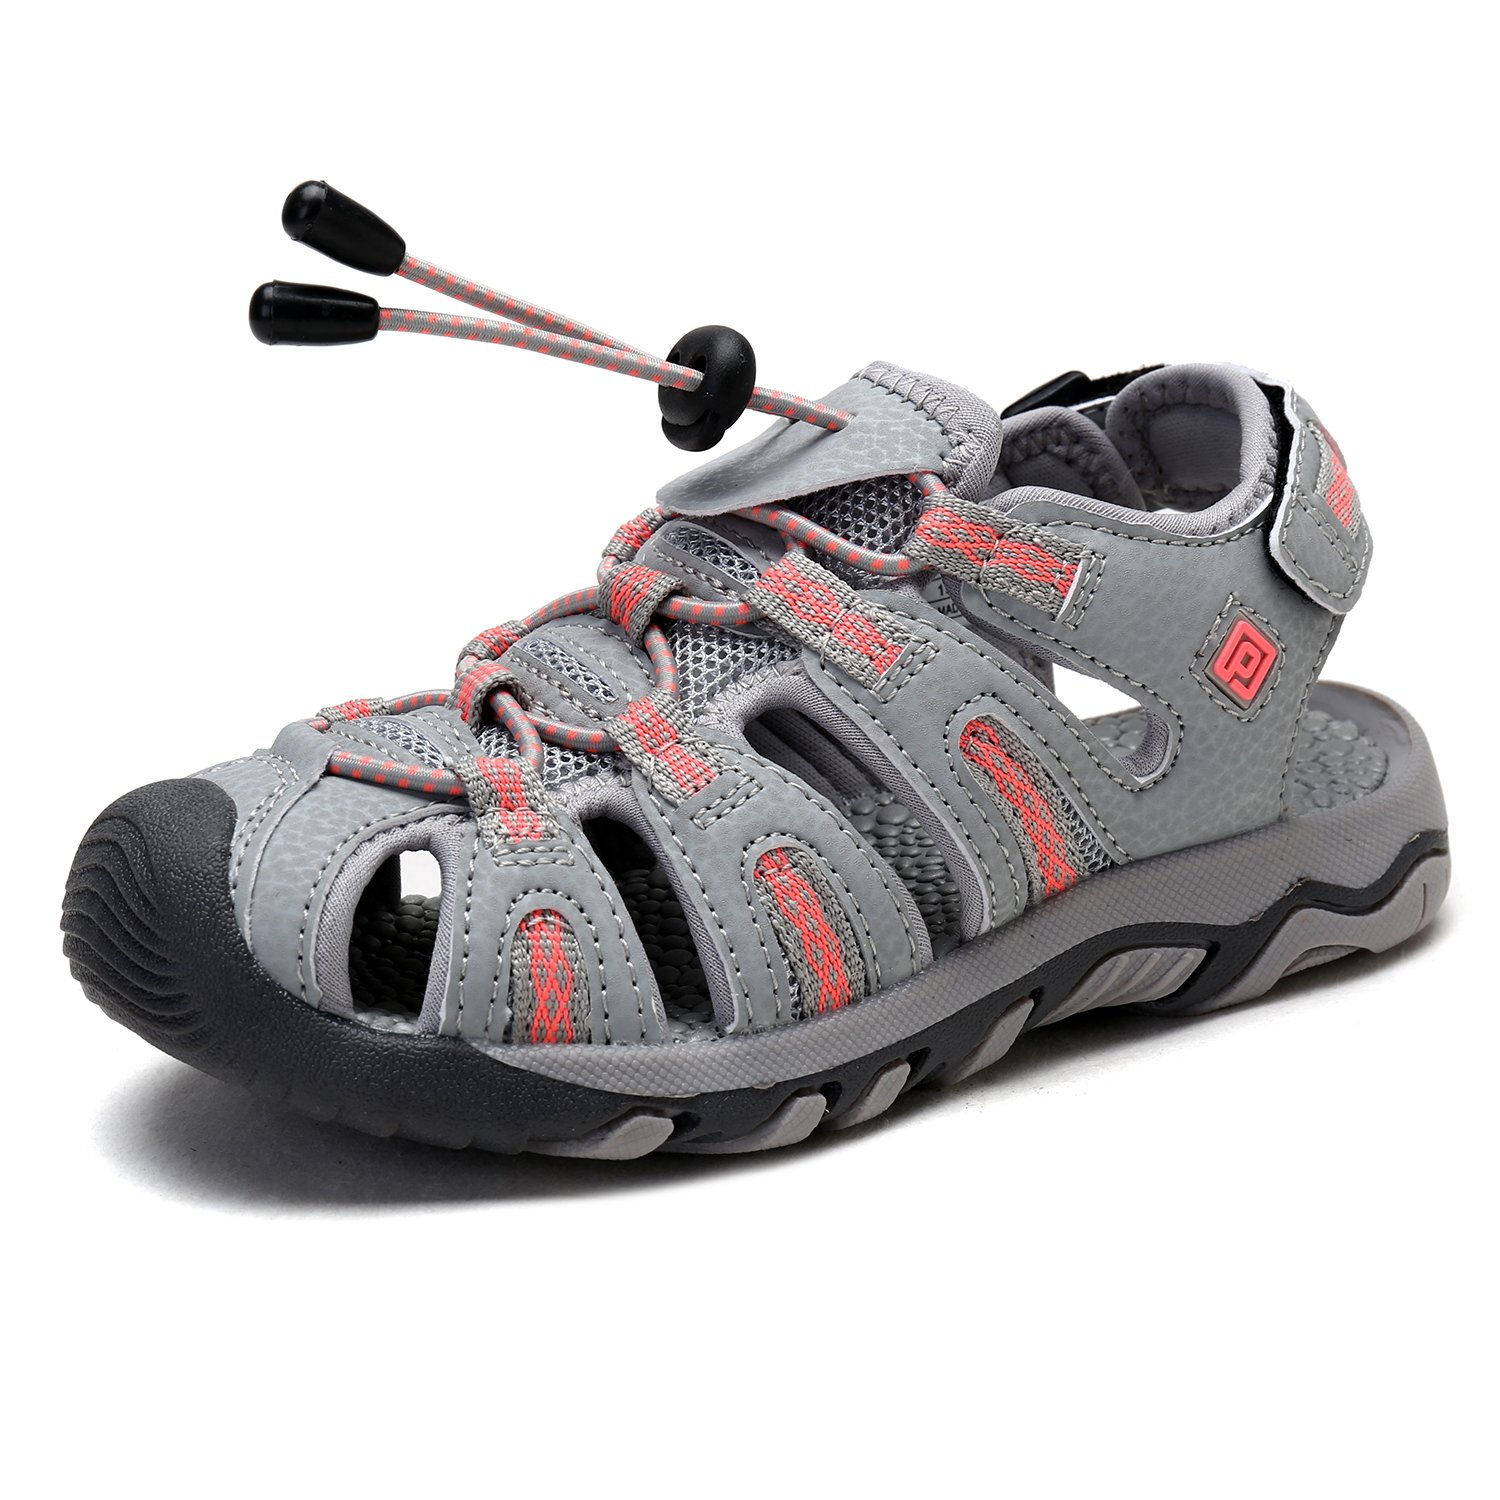 DREAM PAIRS Toddler 160912-K LT.Grey Coral Outdoor Summer Sandals Size 8 M US Toddler